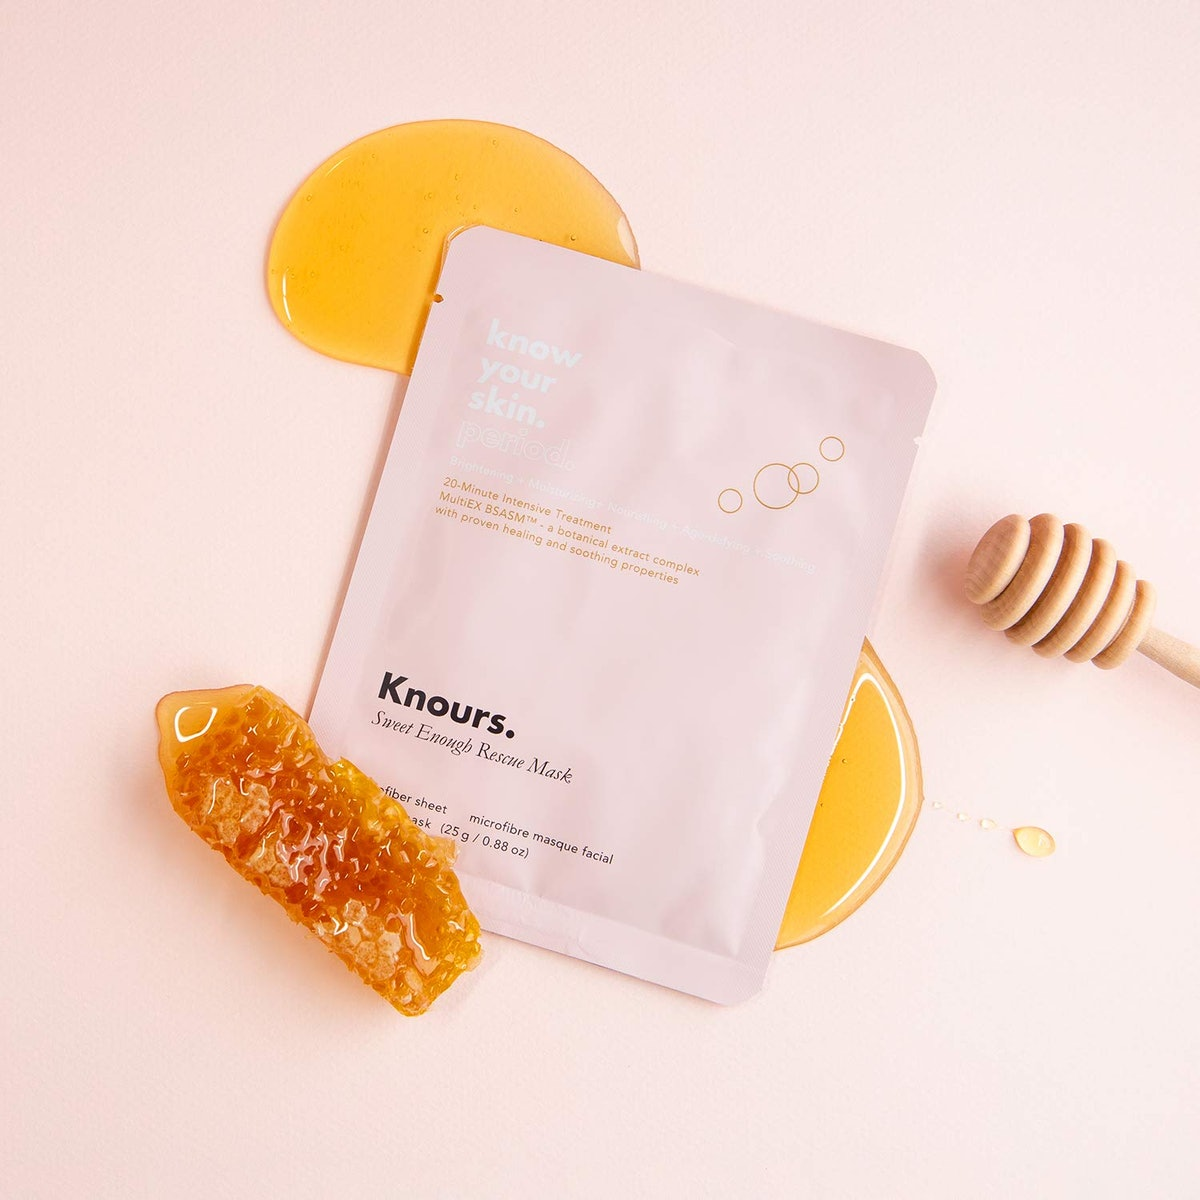 Knours. Sweet Enough Rescue Masks (5 Pack)